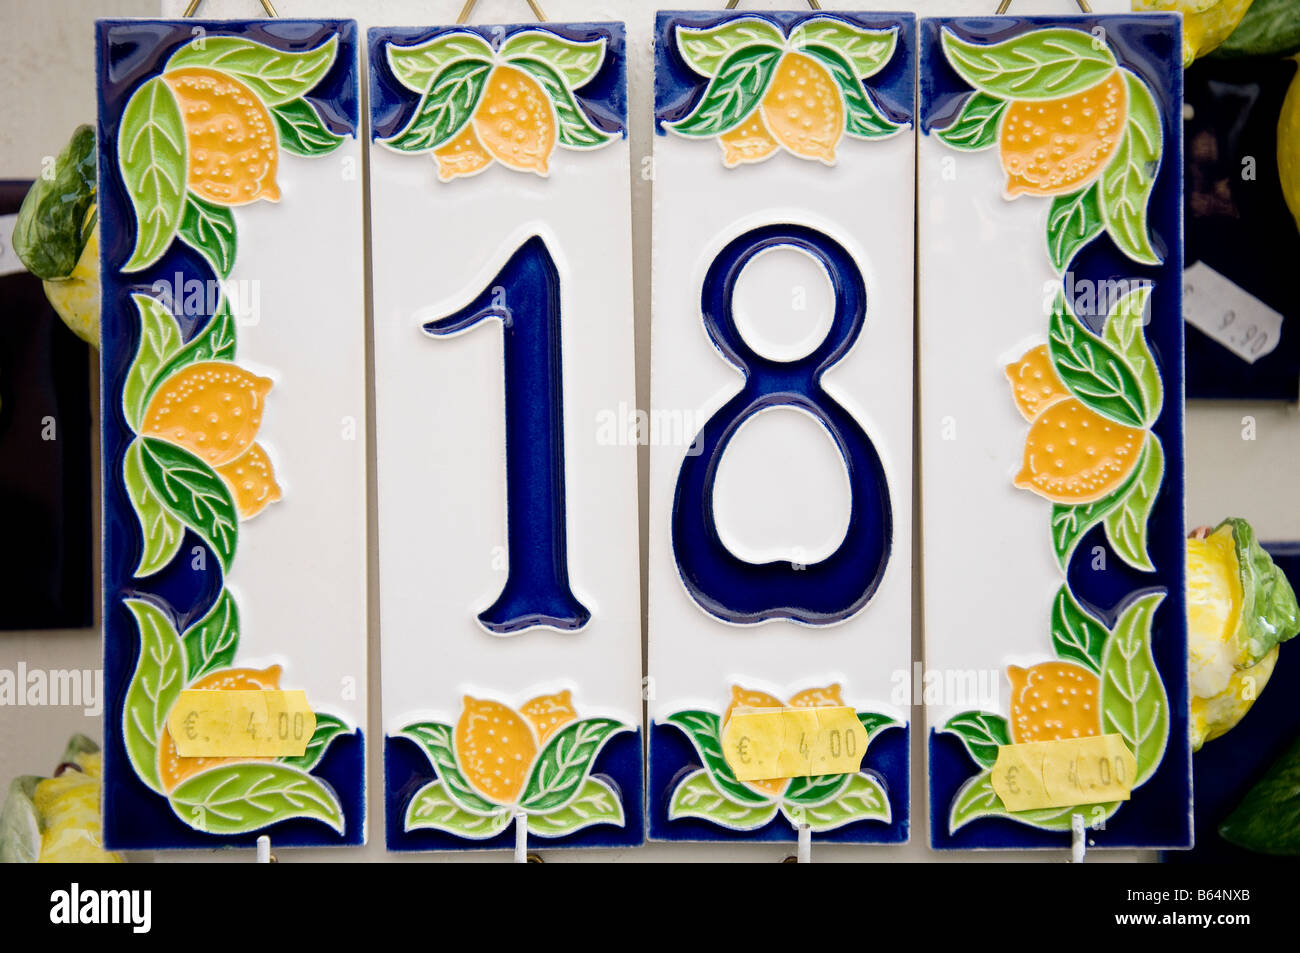 https www alamy com stock photo house number 18 and lemons on a ceramic tile for sale with price labels 21003315 html